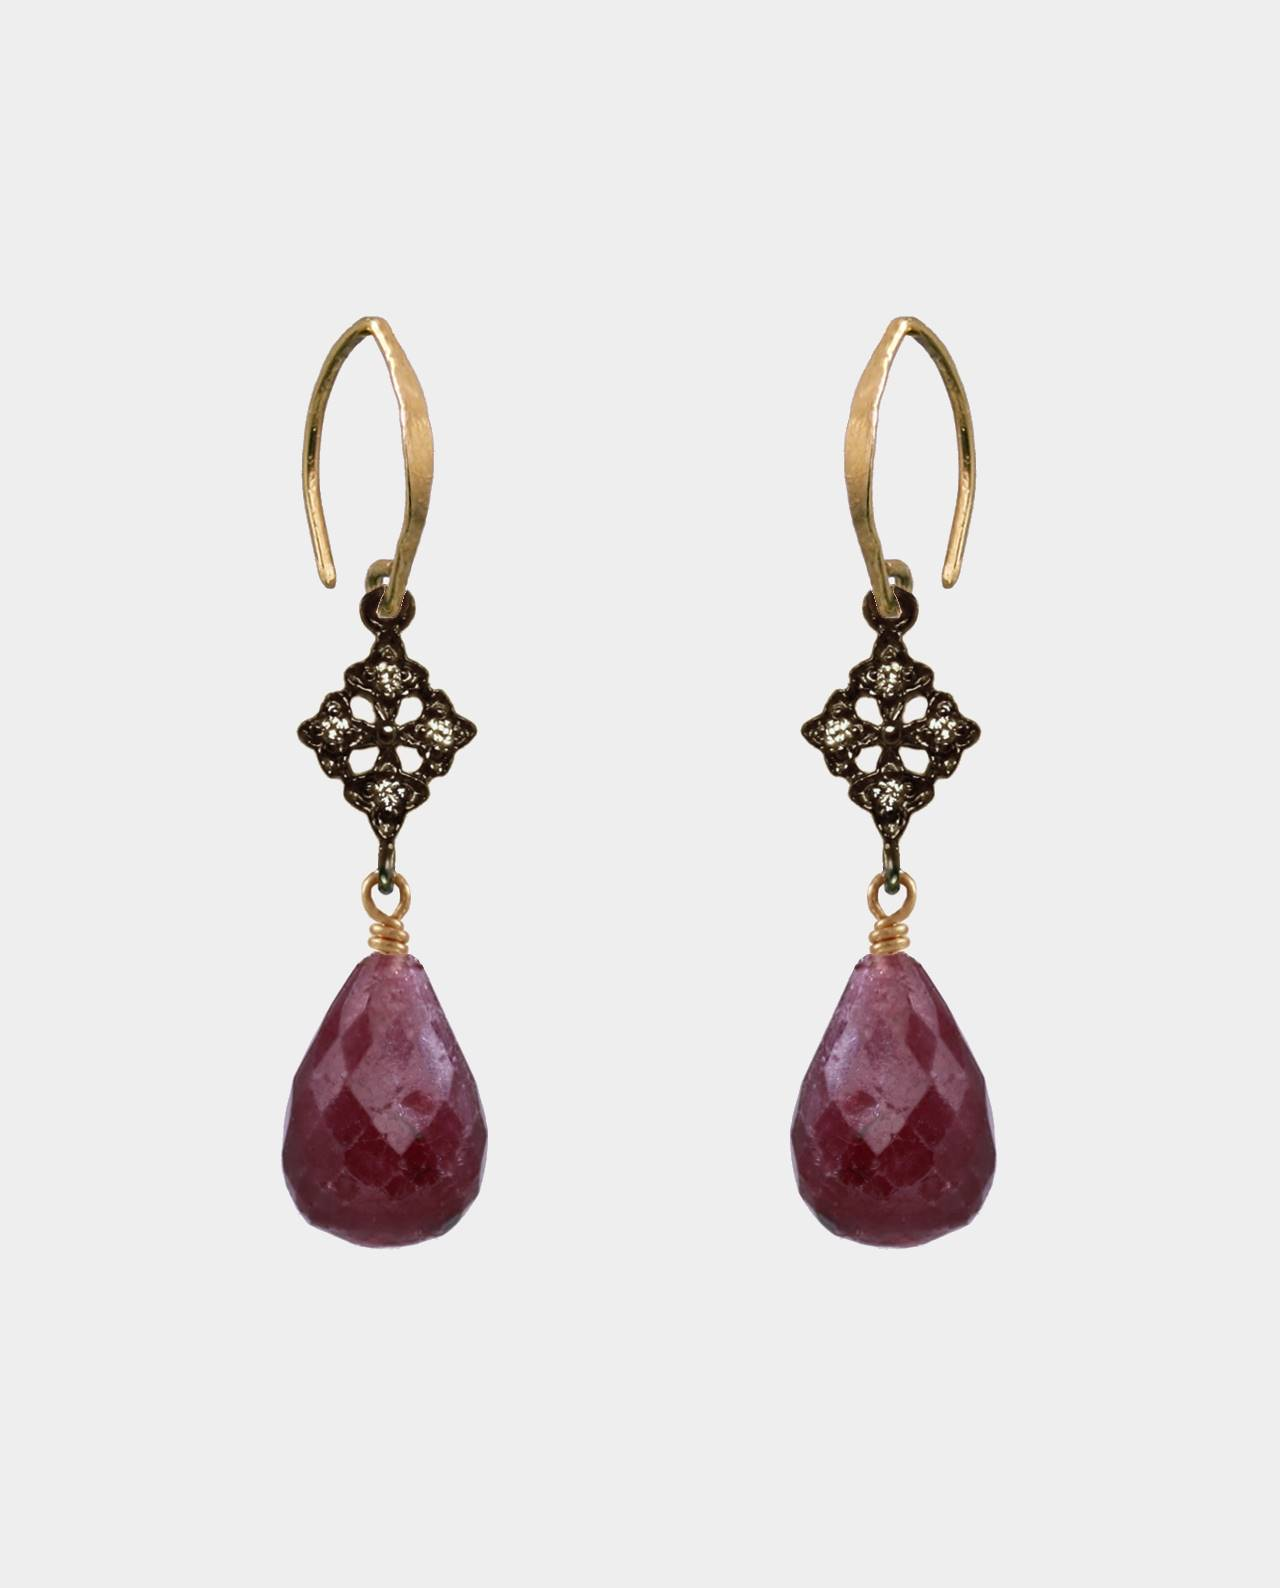 Handmade earrings with large droplet-shaped rubies and zirconia and rustic oval ear hooks in sterling silver gilt gold